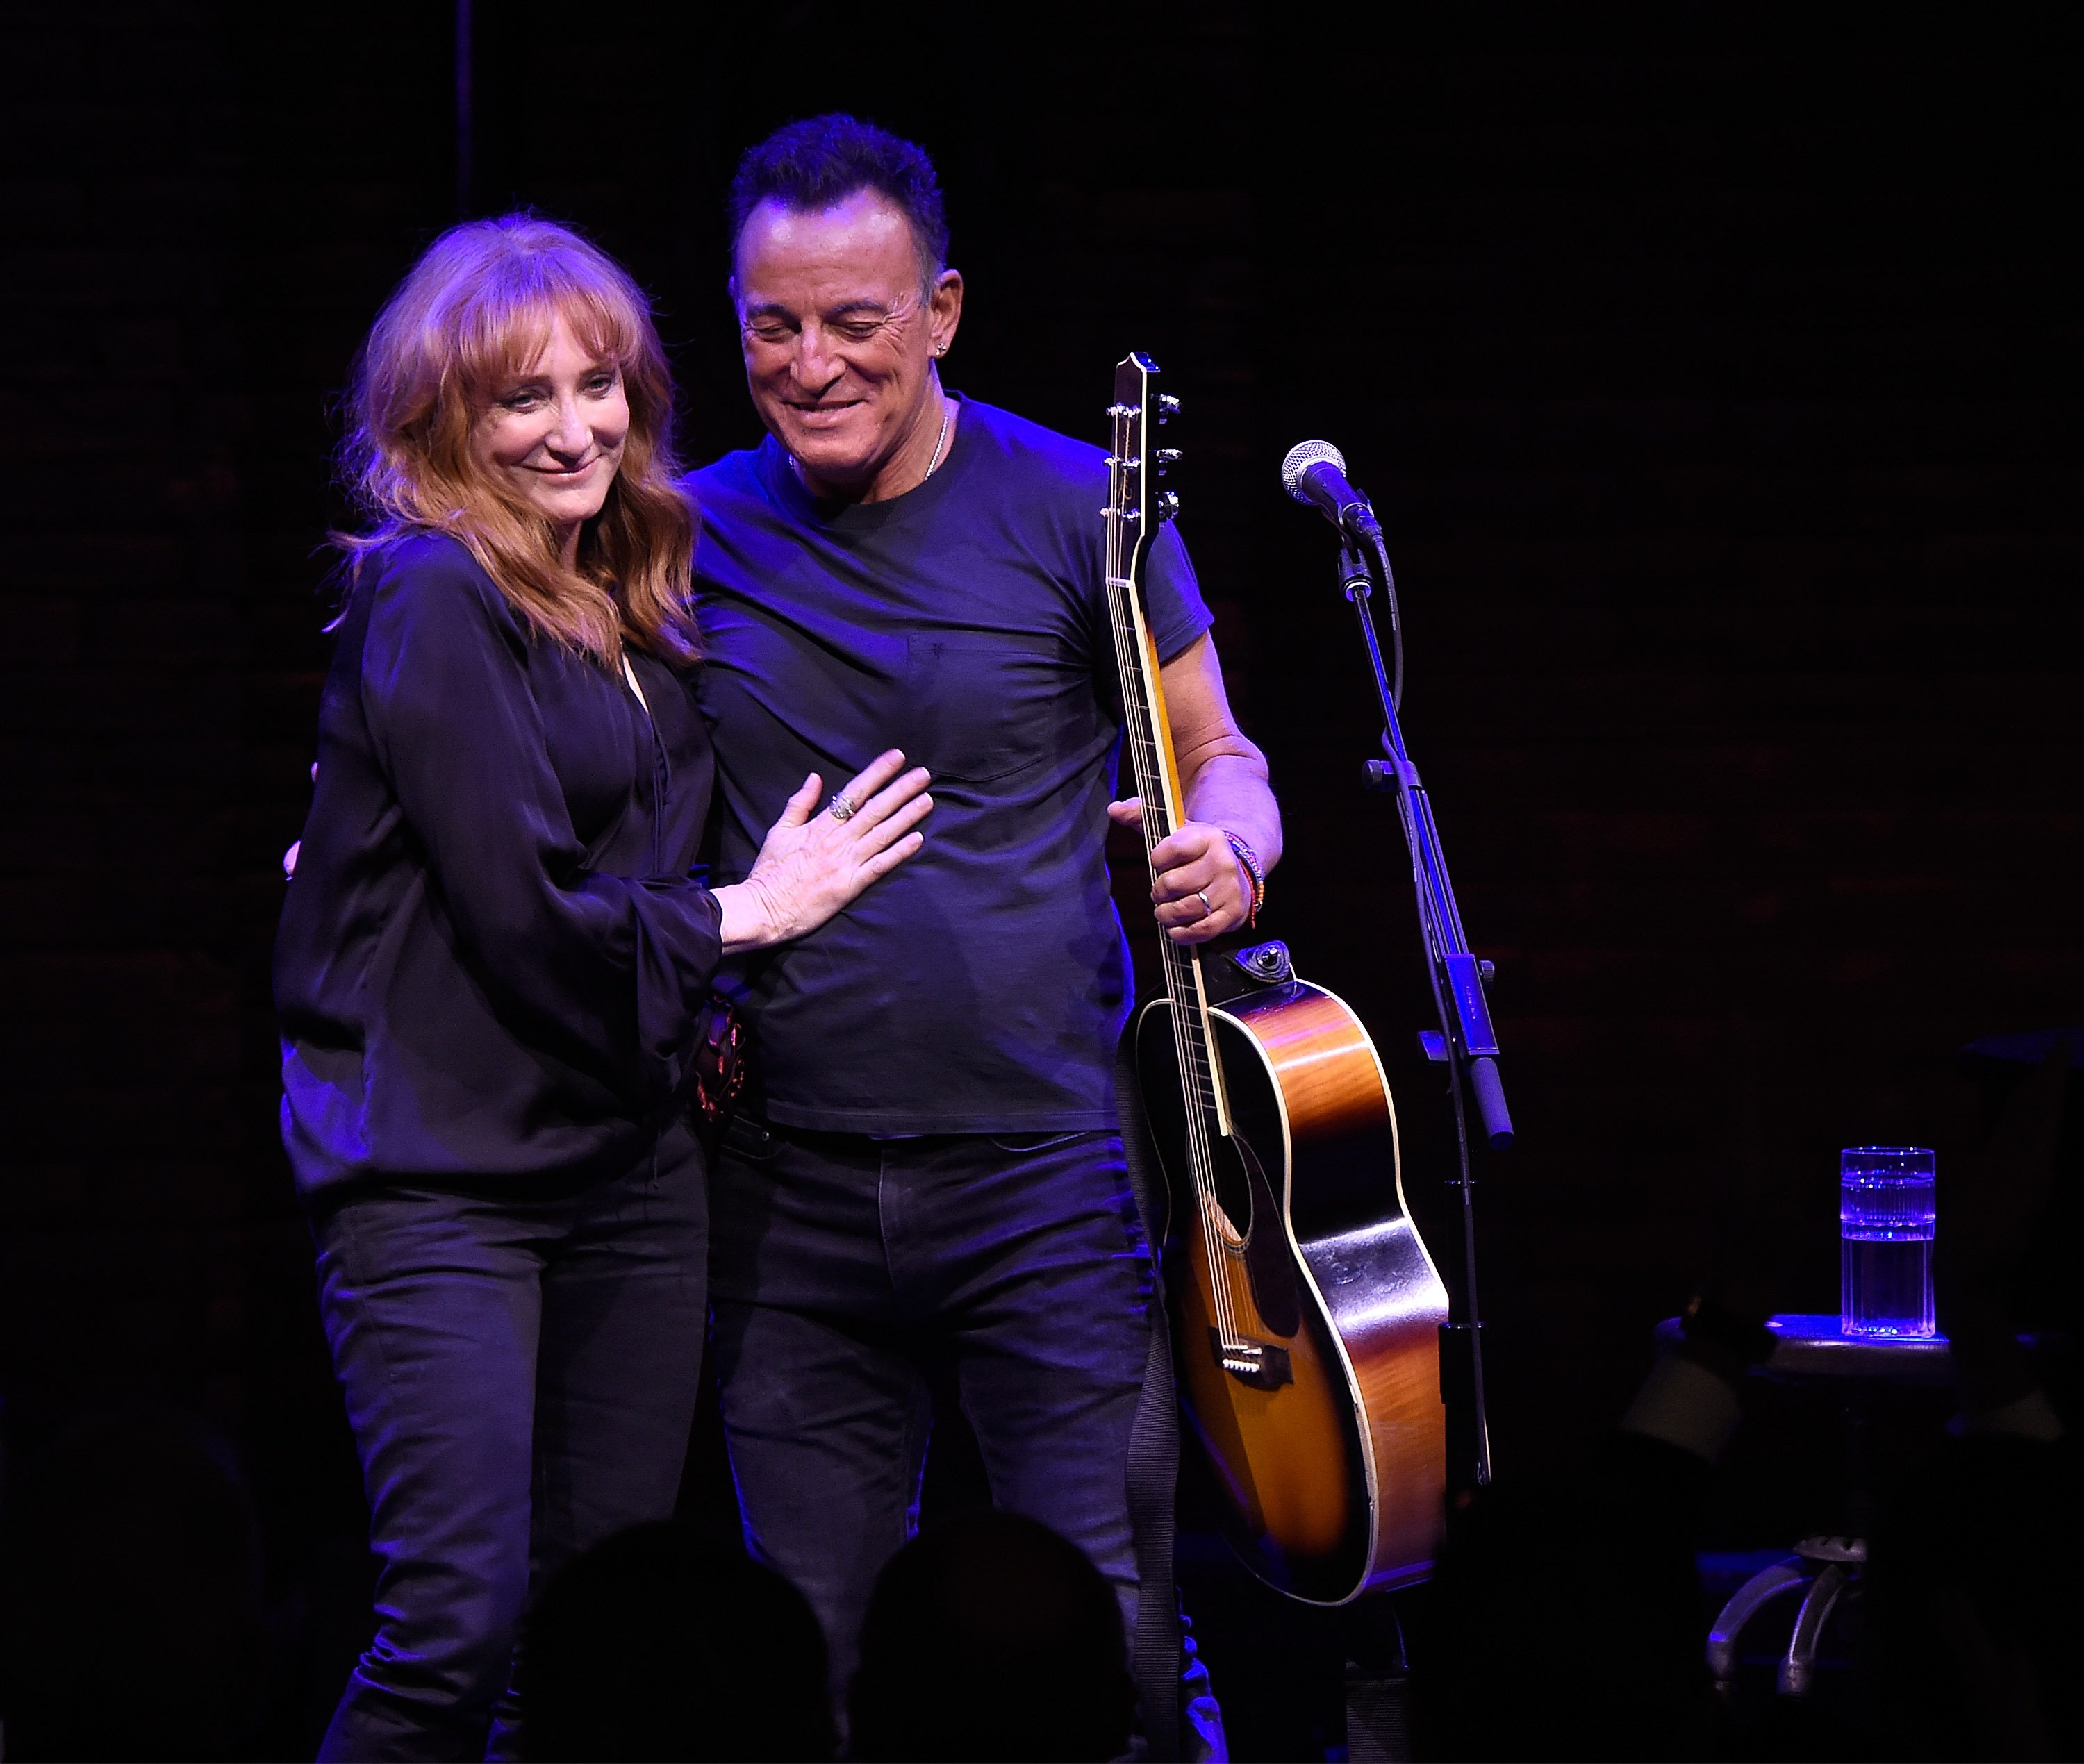 Bruce Springsteen and Patti Scialfa almost 30 years together. | Photo: Getty Images